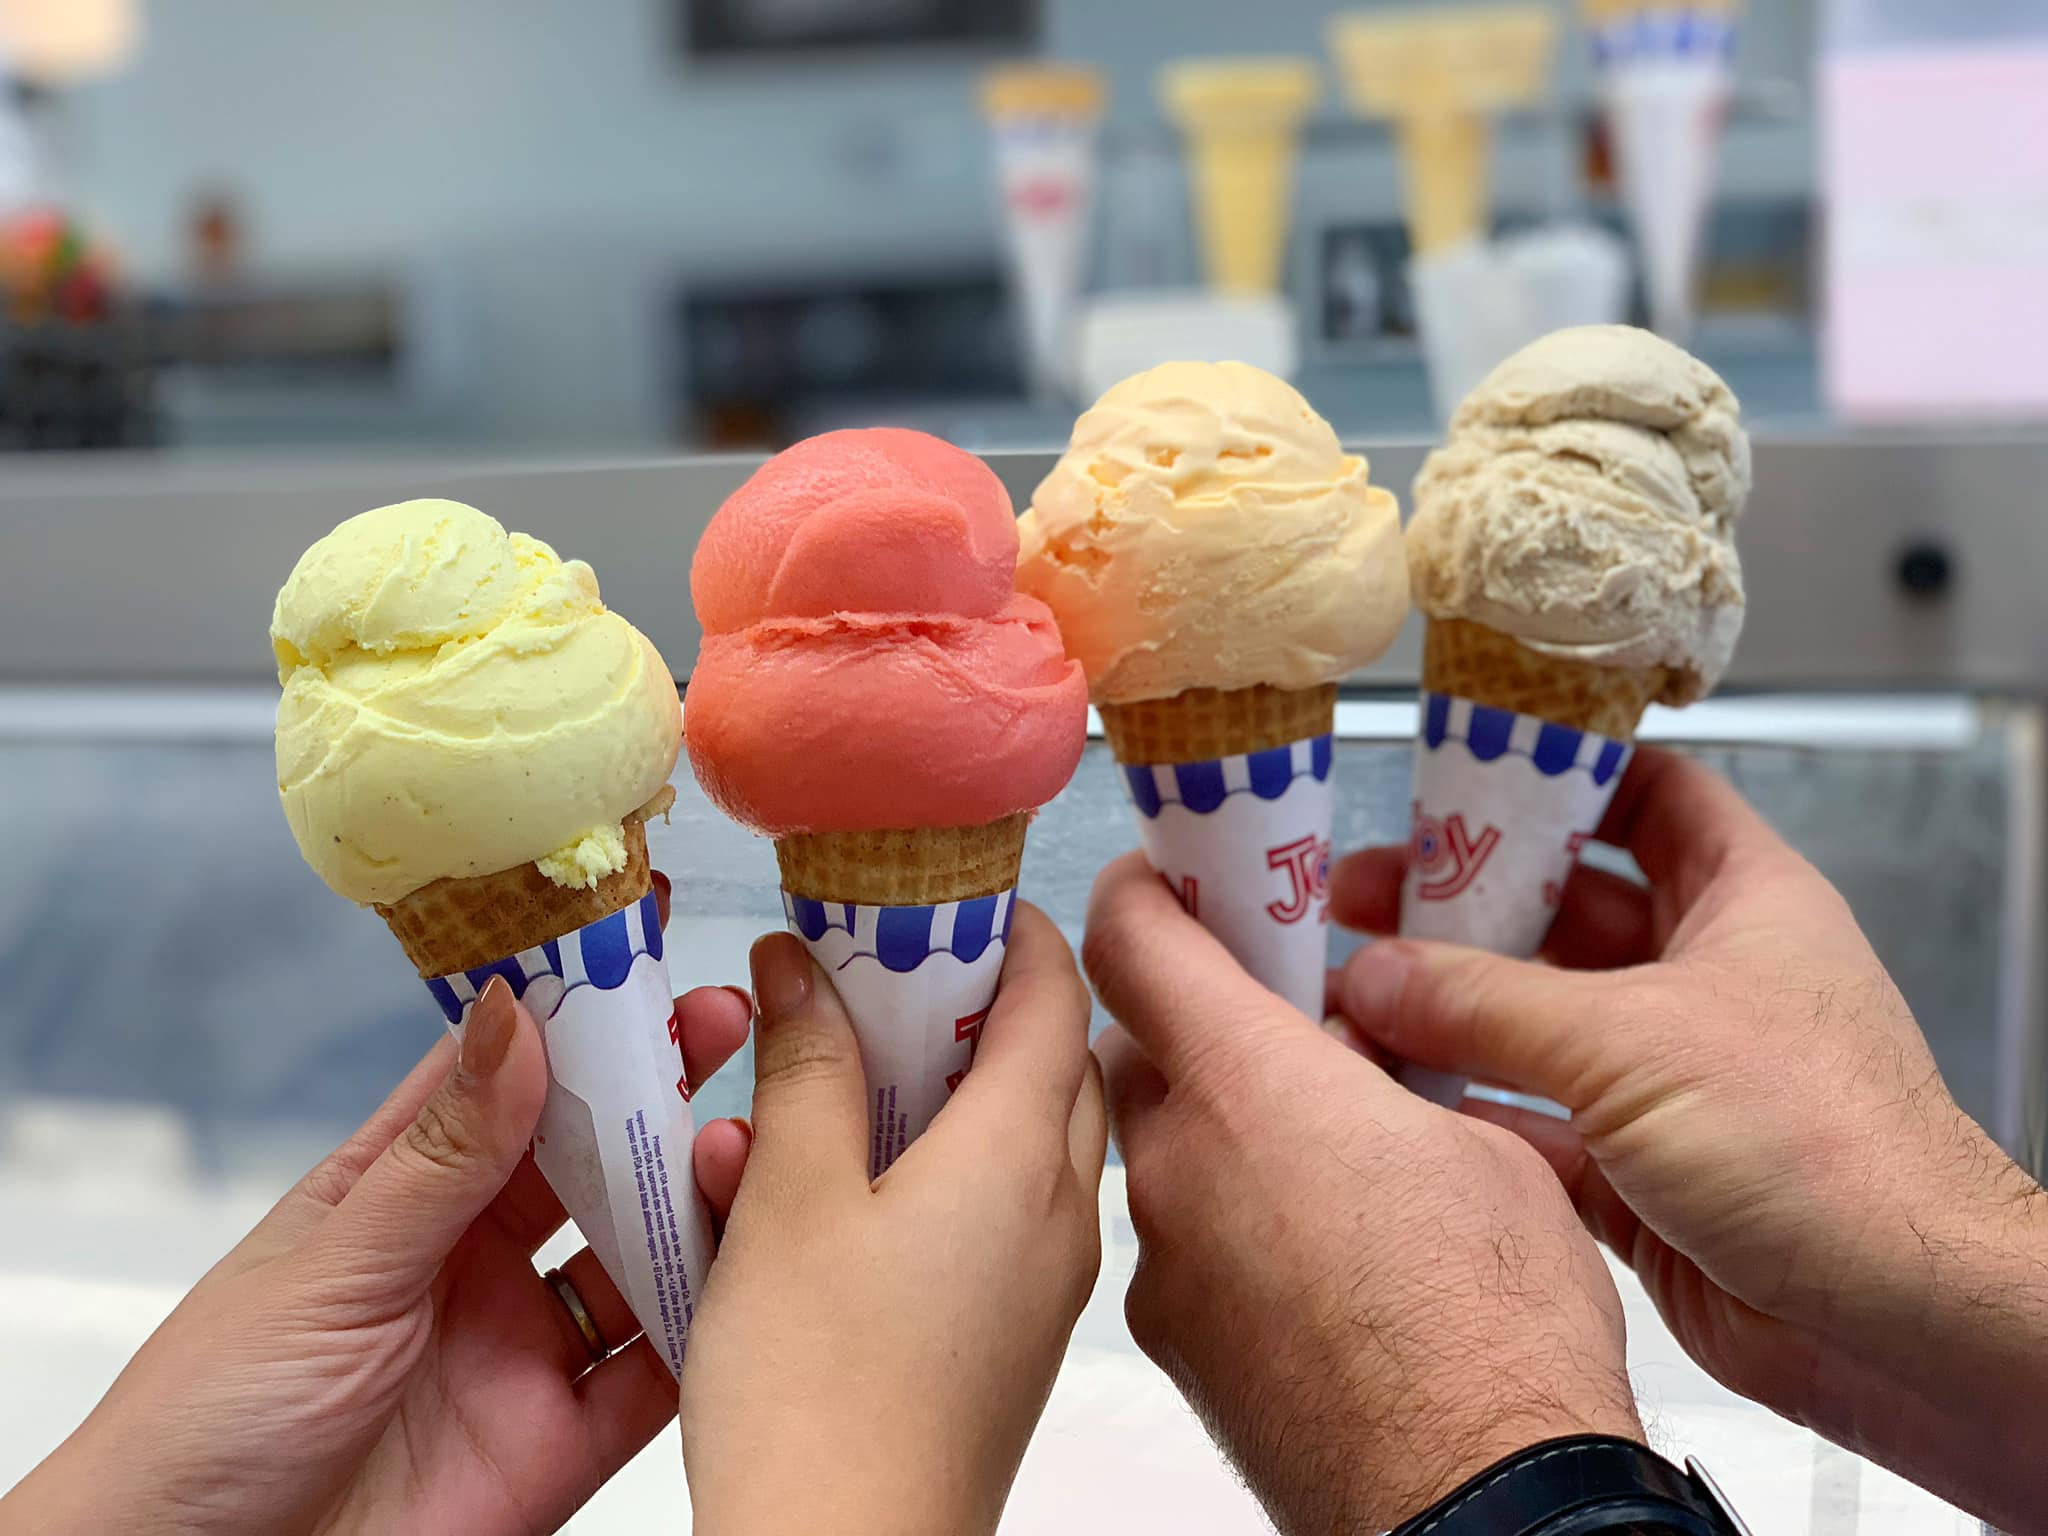 100-Year-Old LA Ice Cream Royalty Expands to New Scoop Shop